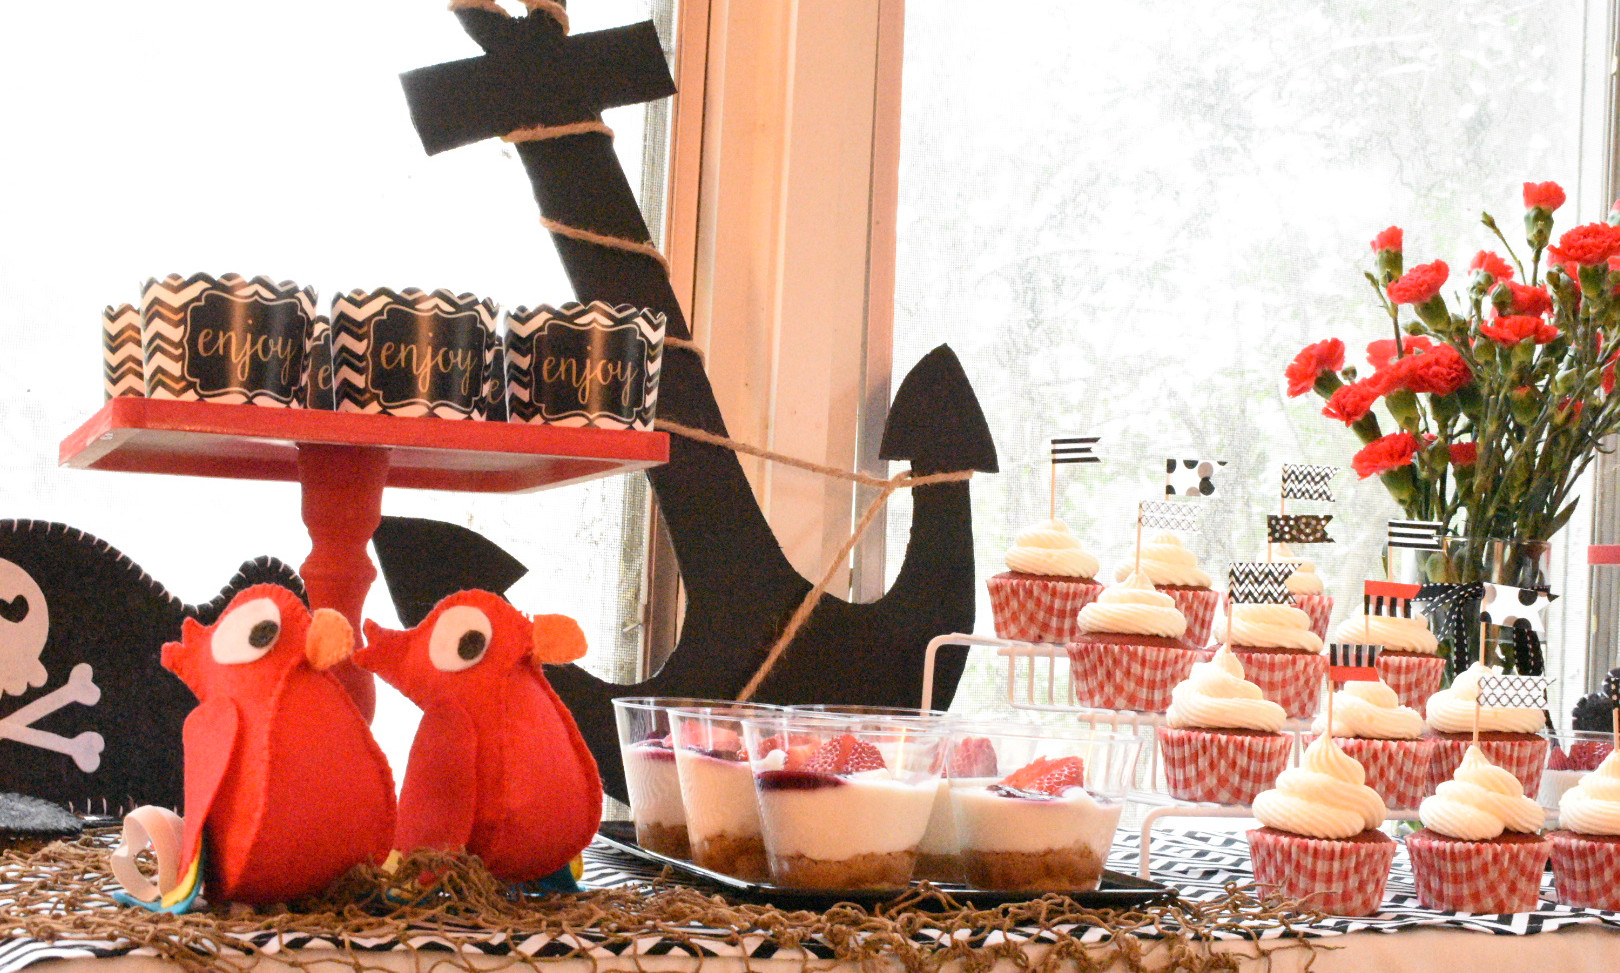 Pirates table:  Red velvet cupcakes Graham/yogurt cups Chocolate coins Felt pirates hat and parrots Fresh flowers